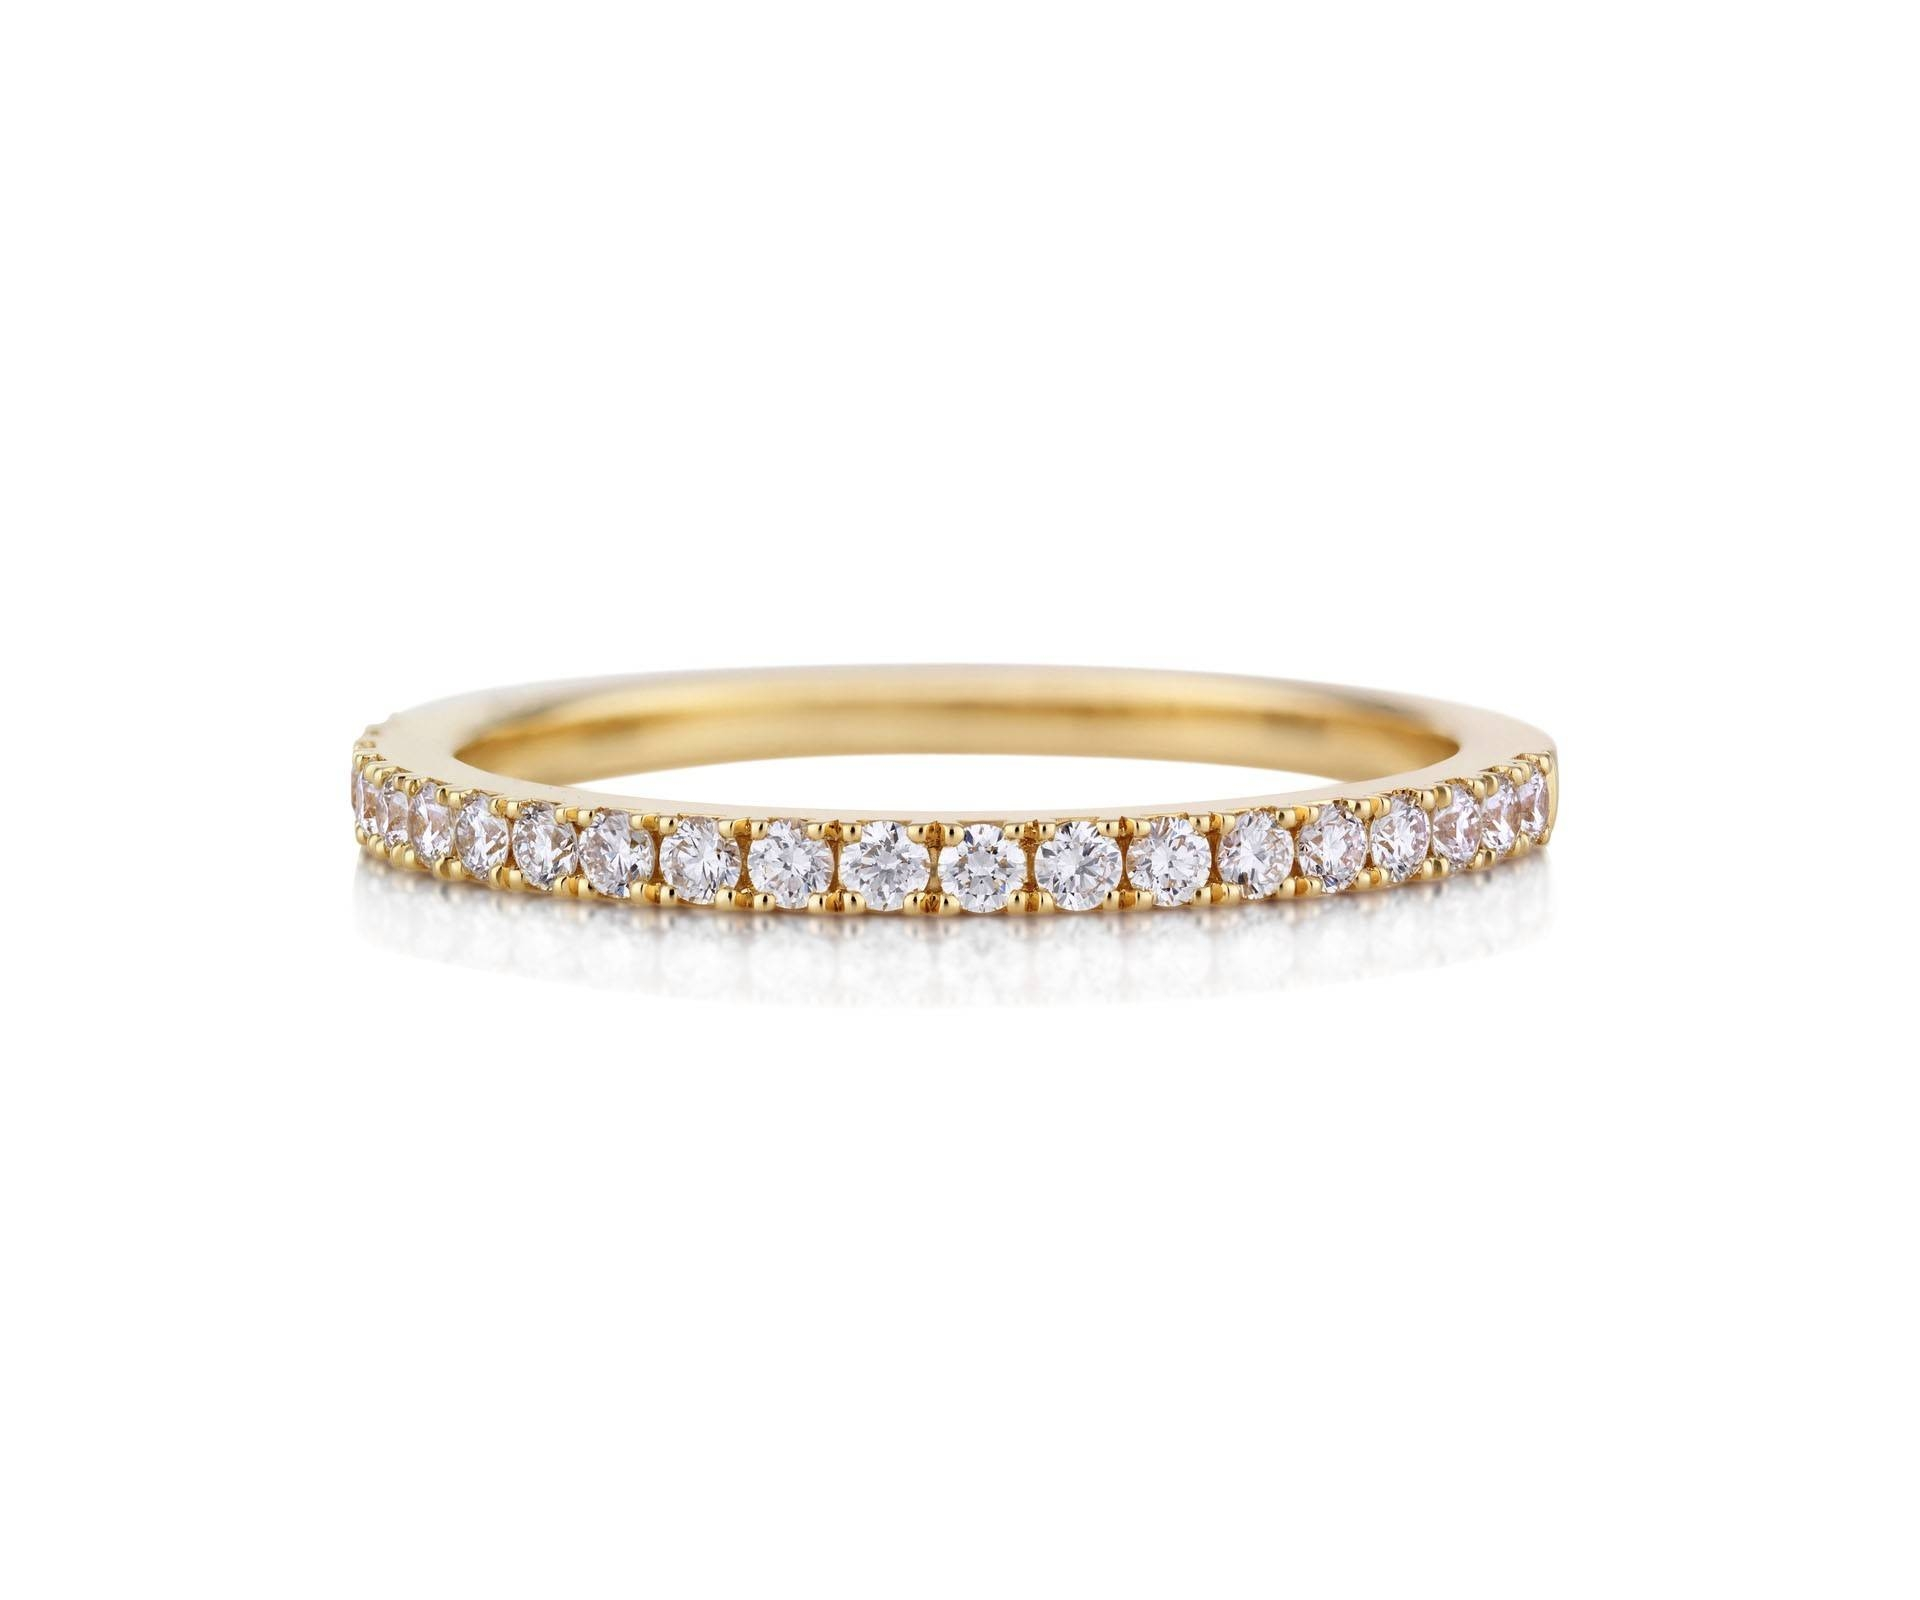 Yellow Gold Diamond Wedding Rings | De Beers With Regard To Most Up To Date Classic Gold Wedding Bands (View 13 of 15)